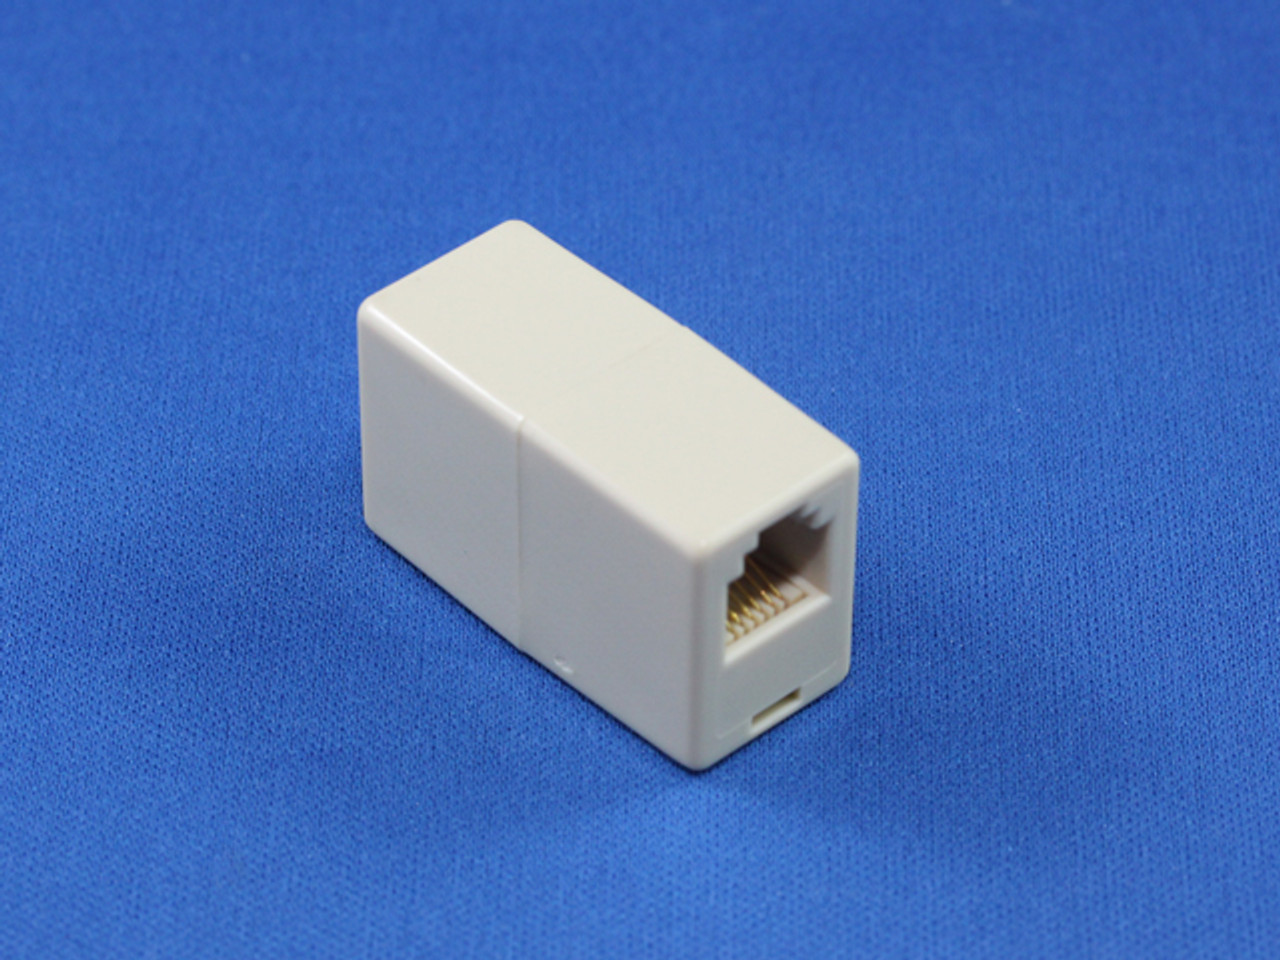 Product image for RJ12 6P6C In Line Coupler | CX Computer Superstore